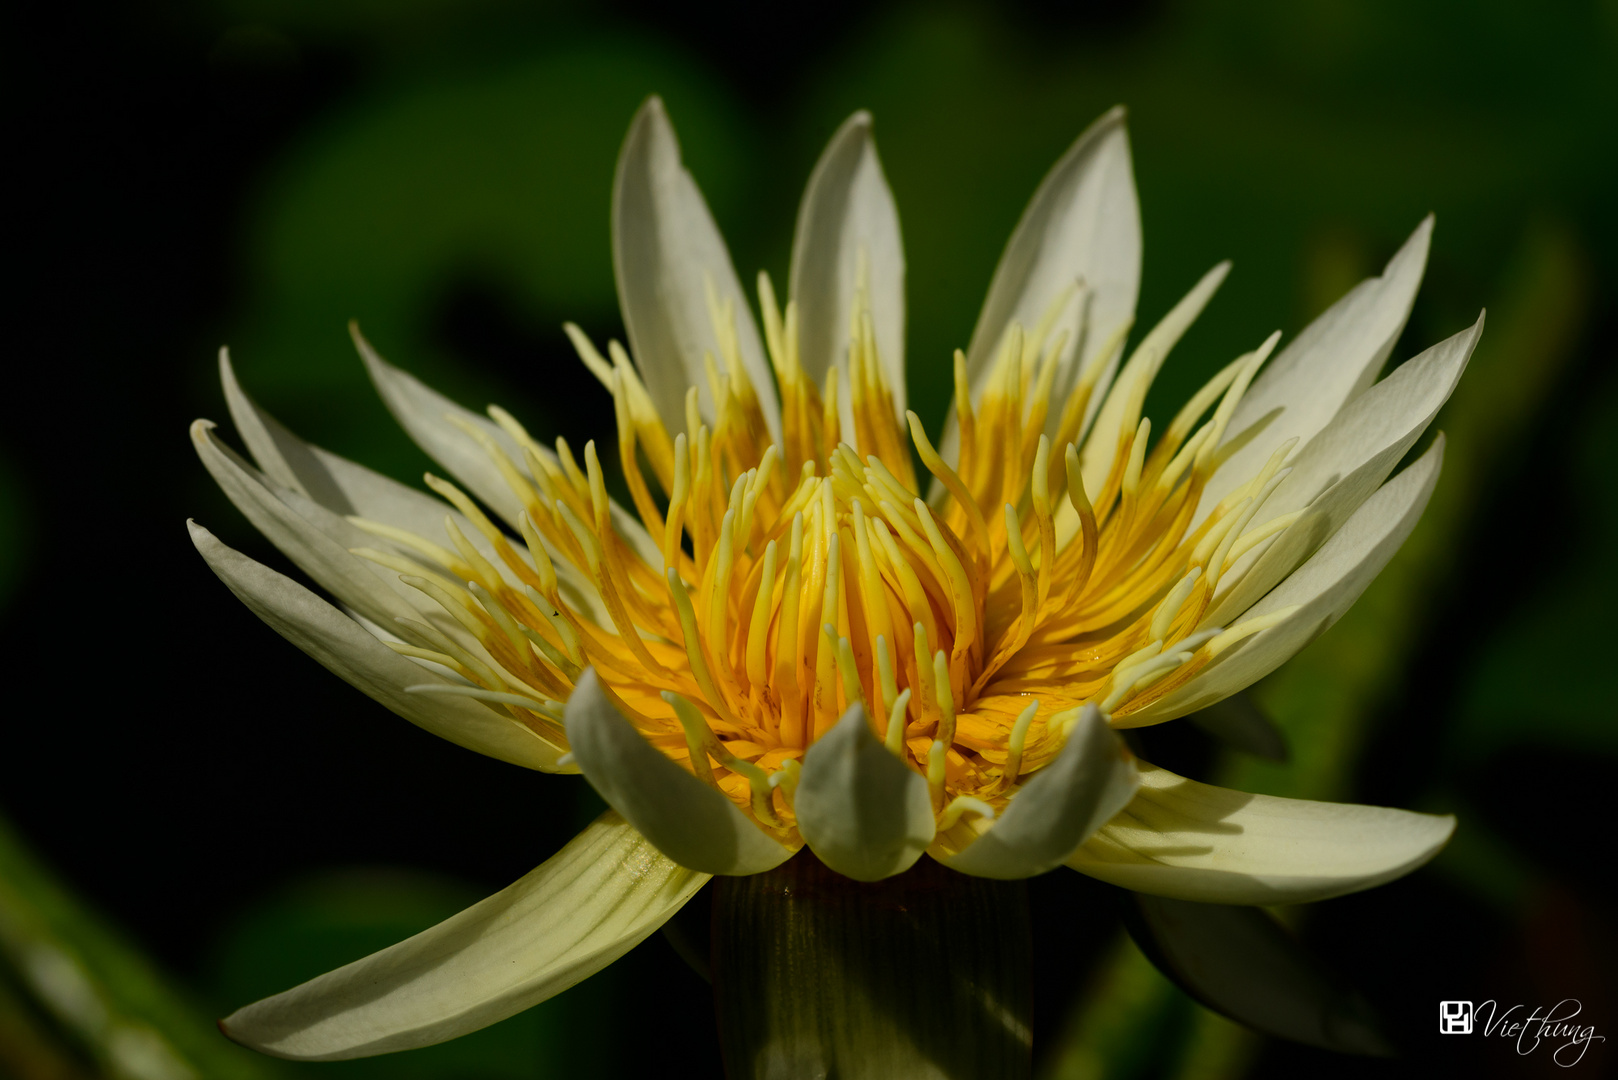 Water lily #8